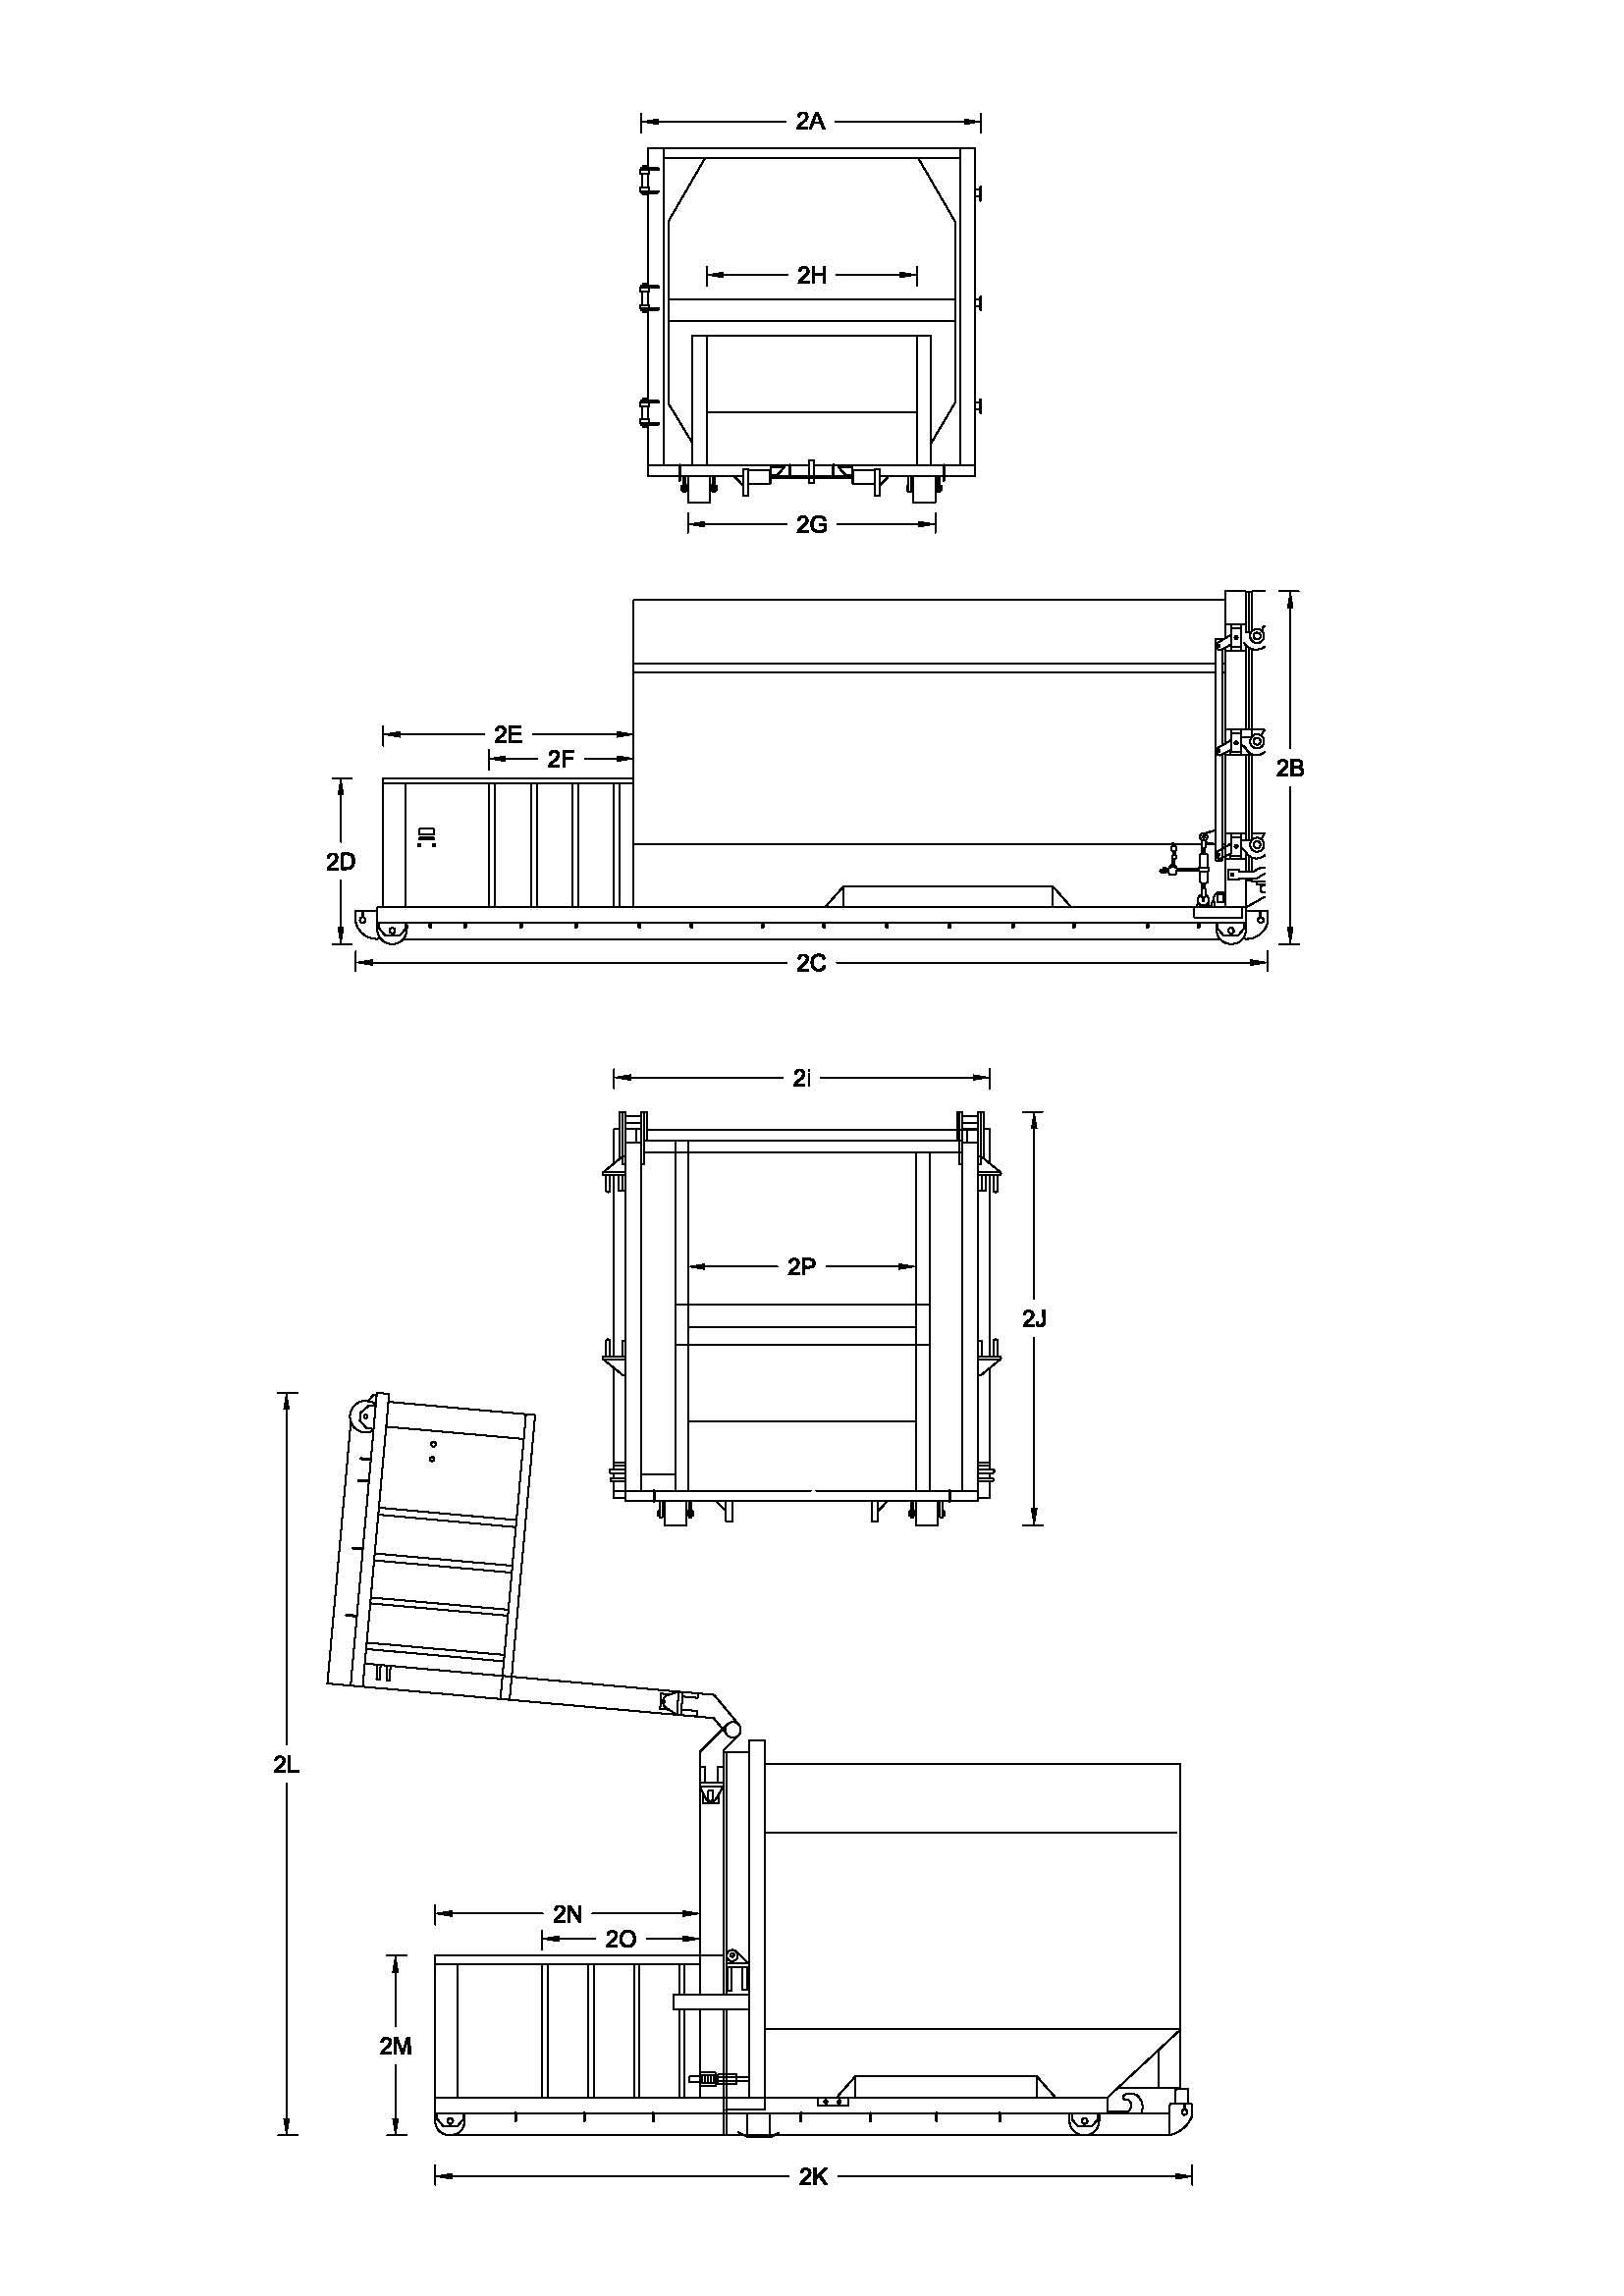 3 phase roller door wiring diagram pioneer deh p3100ub 30 yard self contained compactors